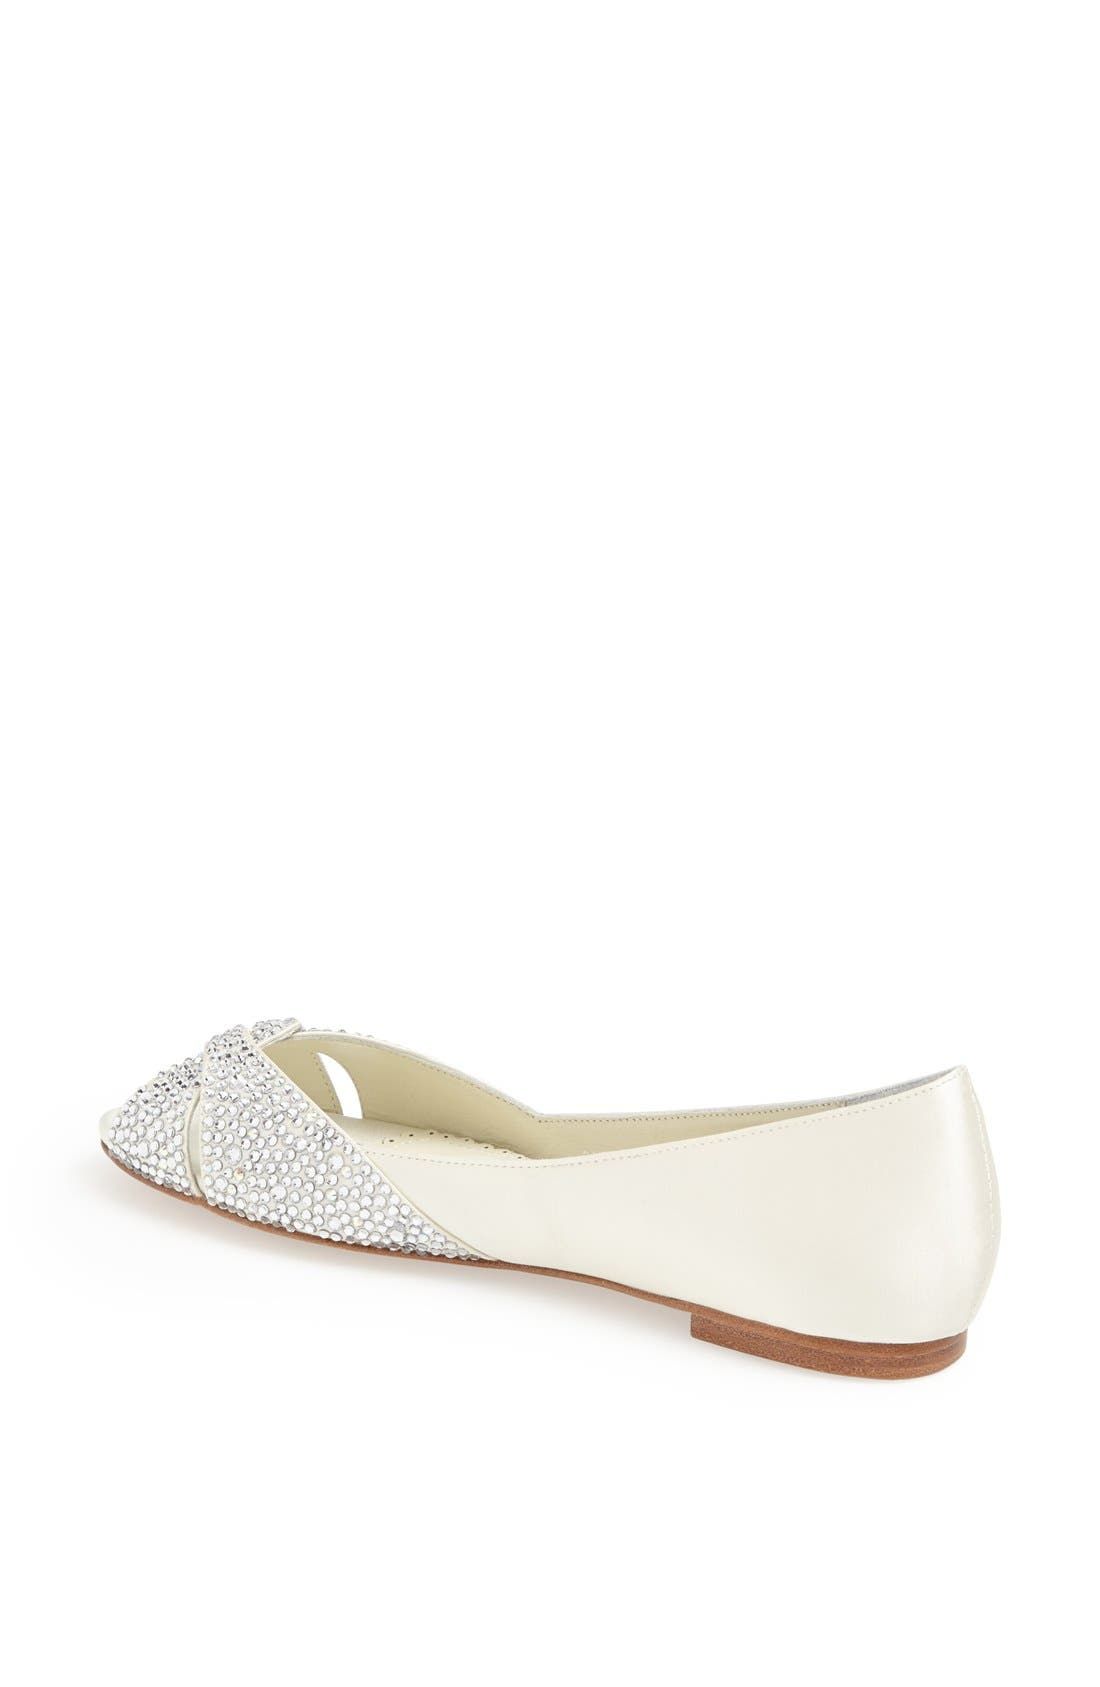 'Andie' Crystal Embellished Peep Toe Flat,                             Alternate thumbnail 2, color,                             900